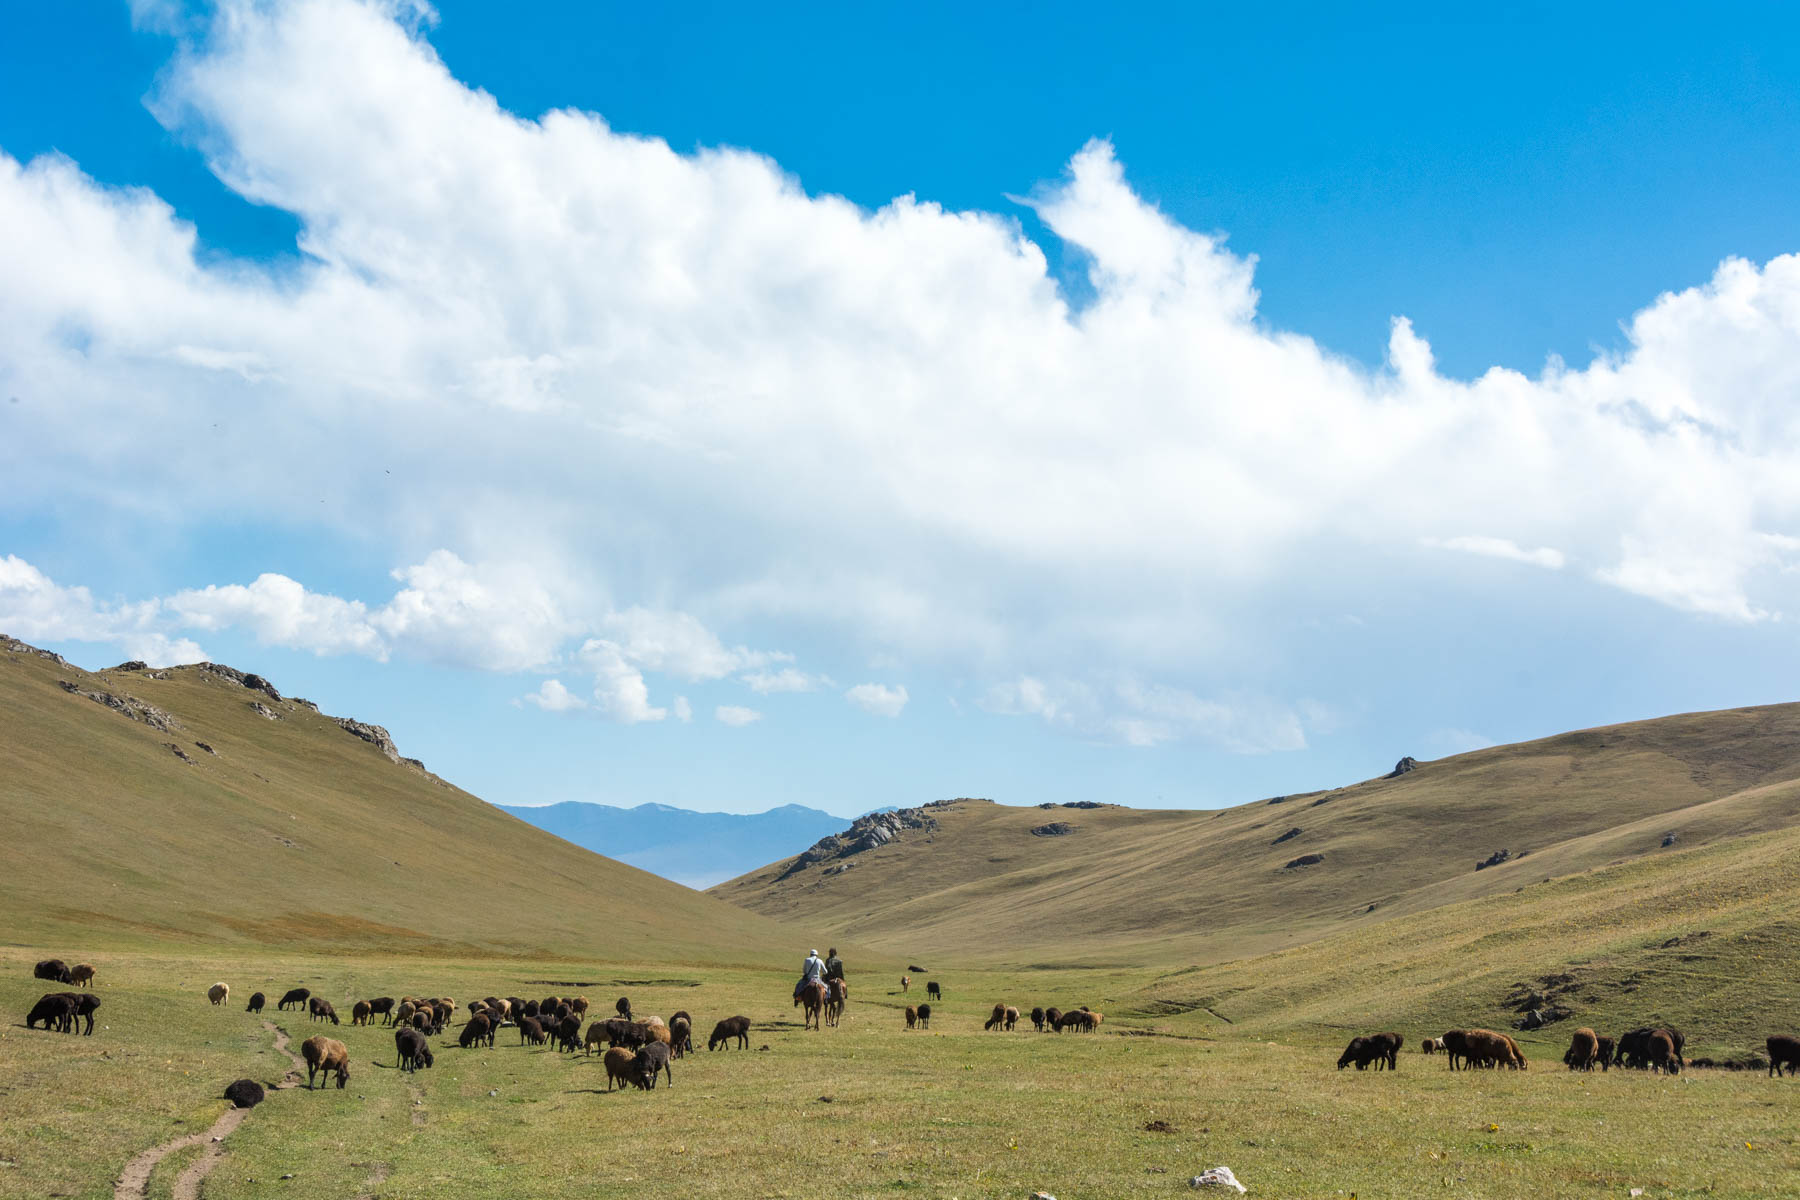 Grazing animals near Song Kul lake in Kyrygzstan - Lost With Purpose